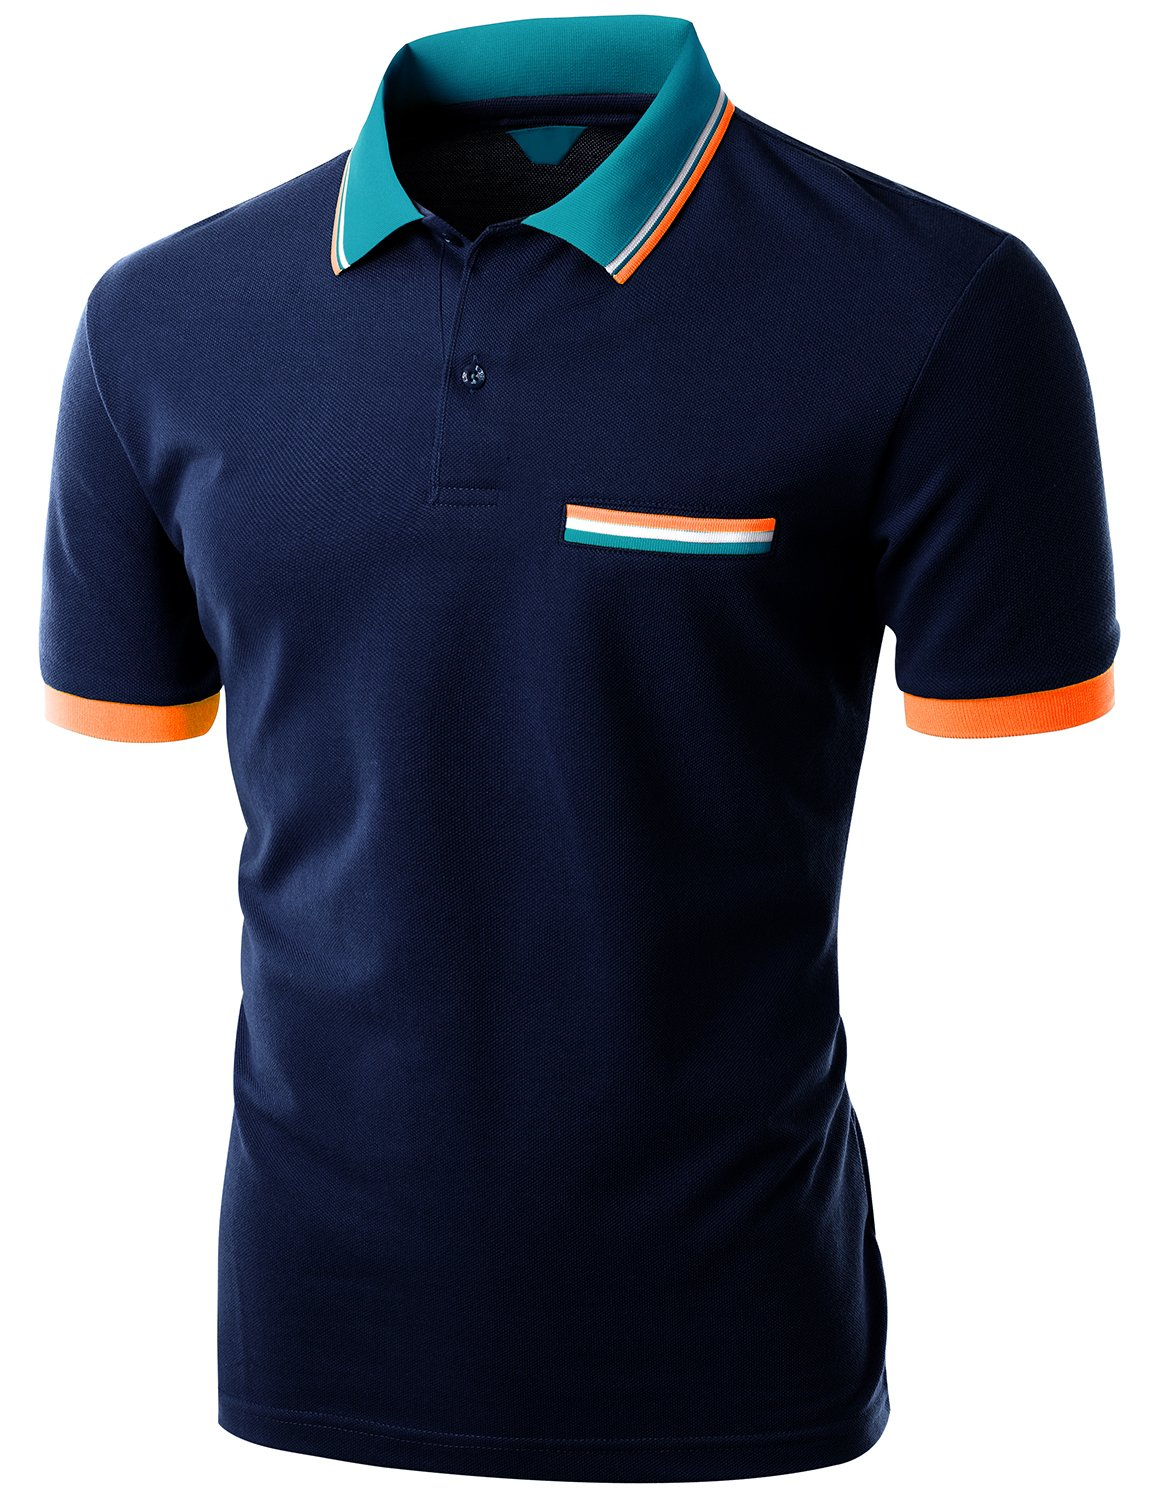 Xpril Color Effect Collar Short Sleeve Polo T Shirt Navy Size M